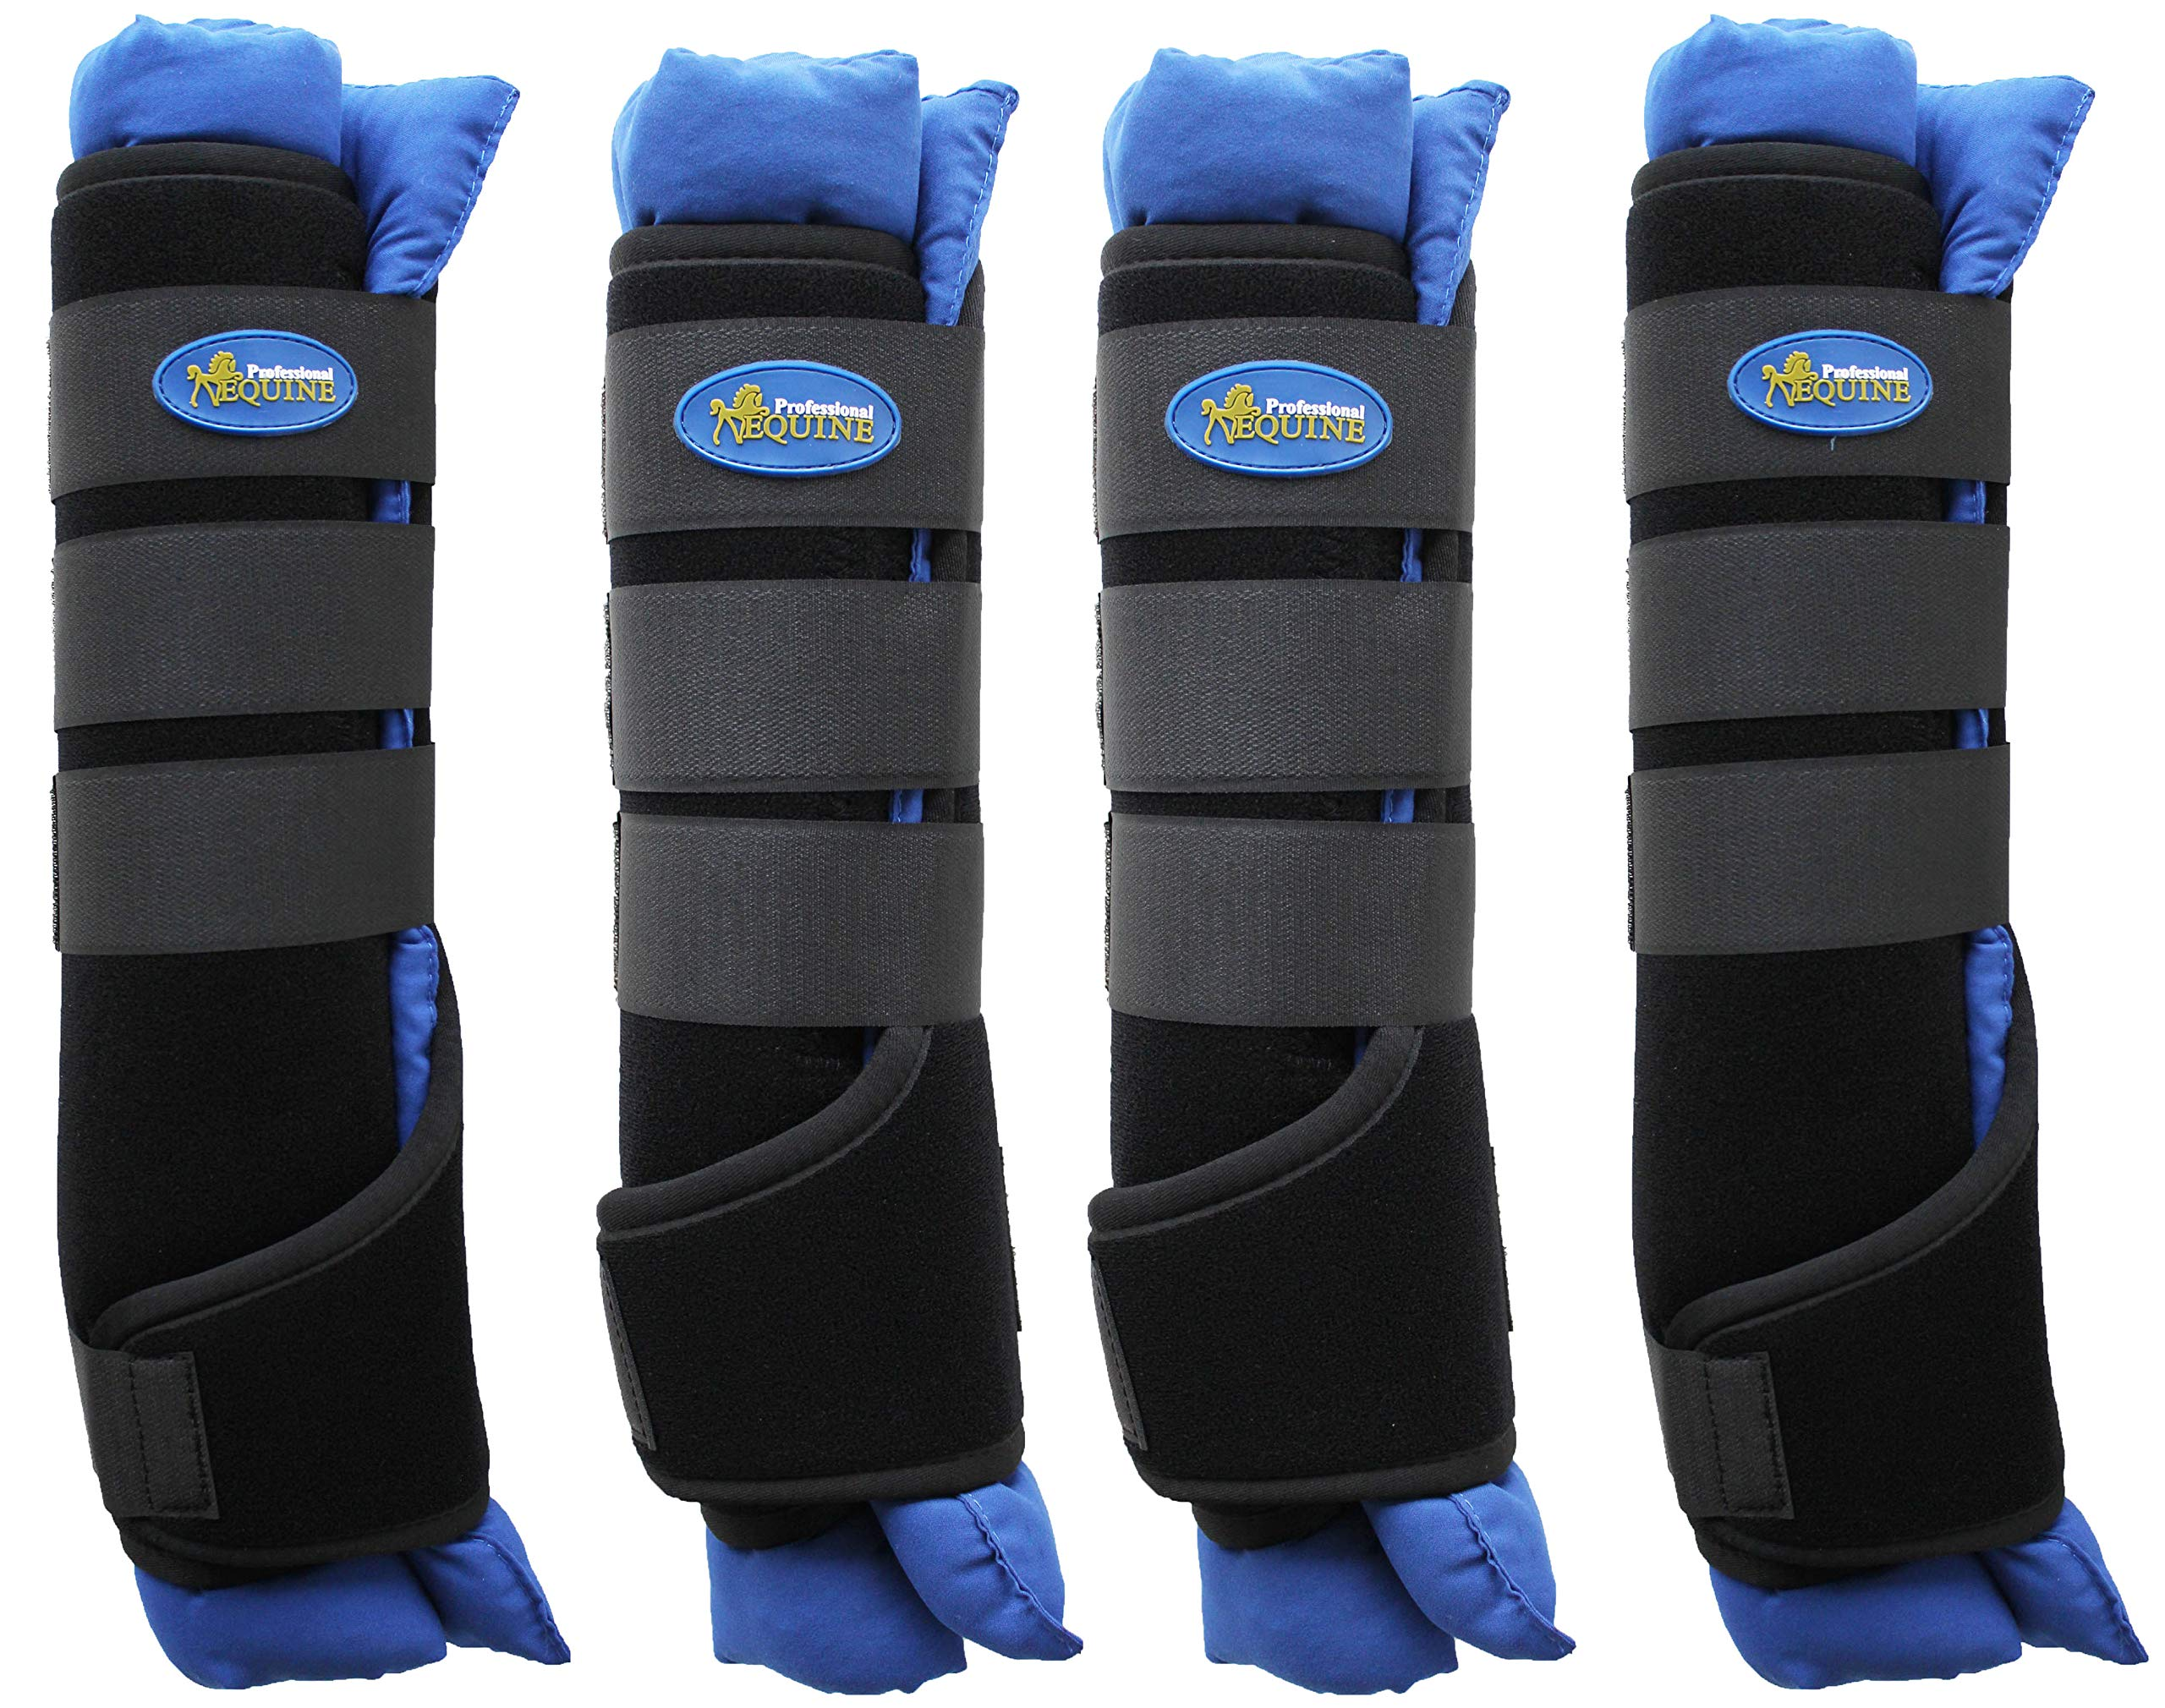 TackRus Horse Stable Shipping Boots Wraps Front Rear 4 PK Leg Care Premium Blue 4120RB